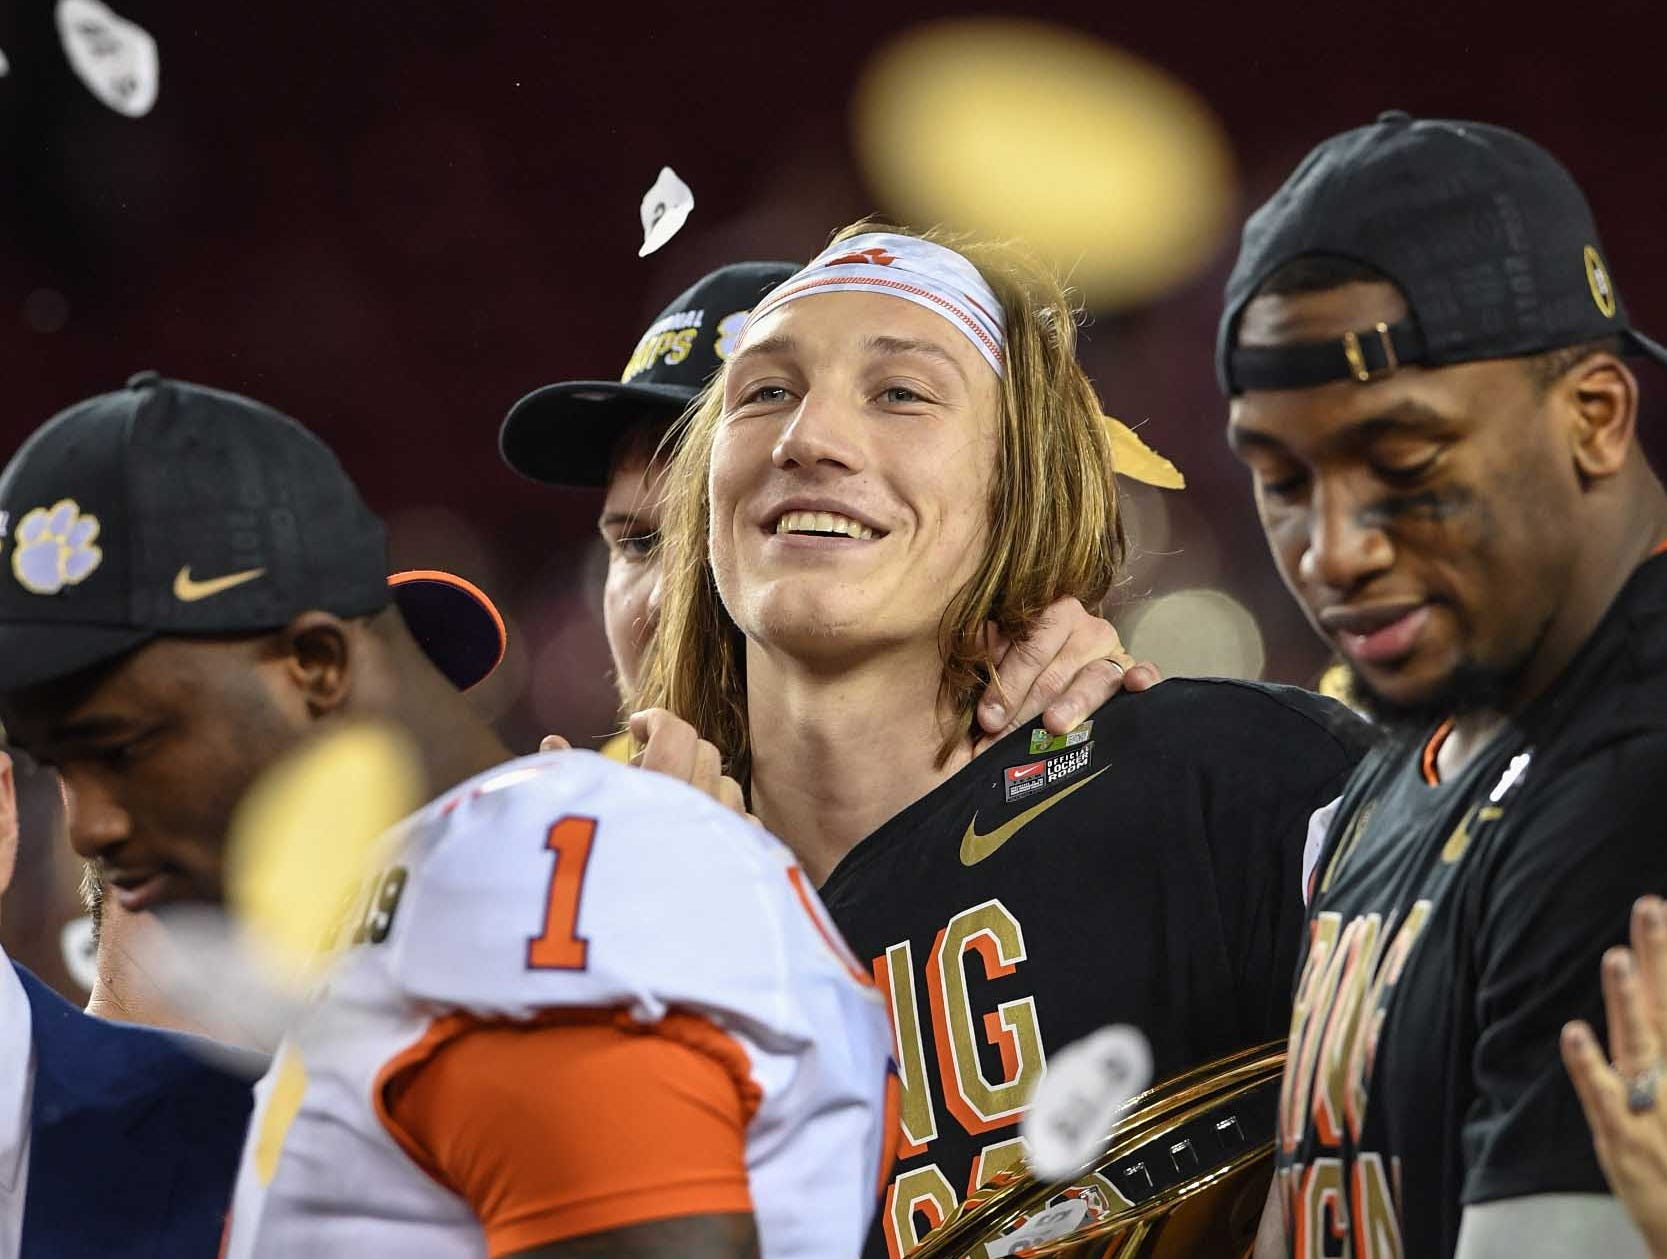 Clemson quarterback Trevor Lawrence (16), middle, cornerback Trayvon Mullen (1), left, and defensive lineman Clelin Ferrell (99) celebrate a 44-16 win over Alabama after the College Football Championship game at Levi's Stadium in Santa Clara, California Monday, January 7, 2019.